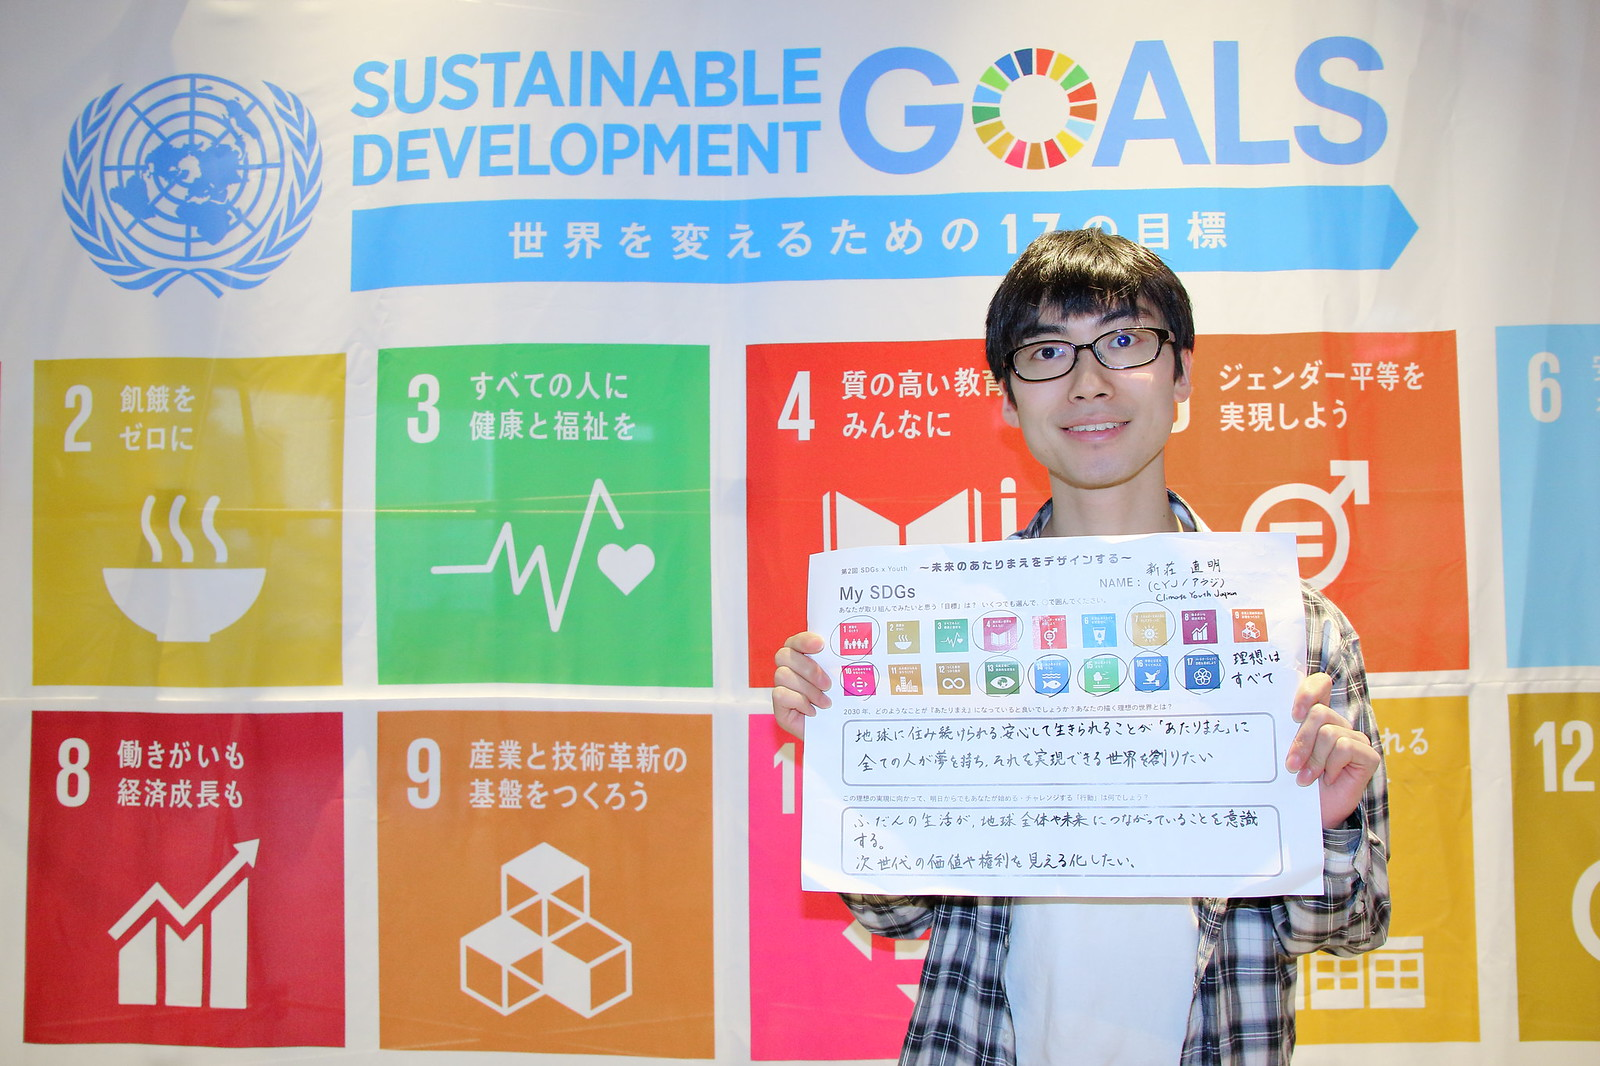 SDGs x Youth 2 - MySDGs